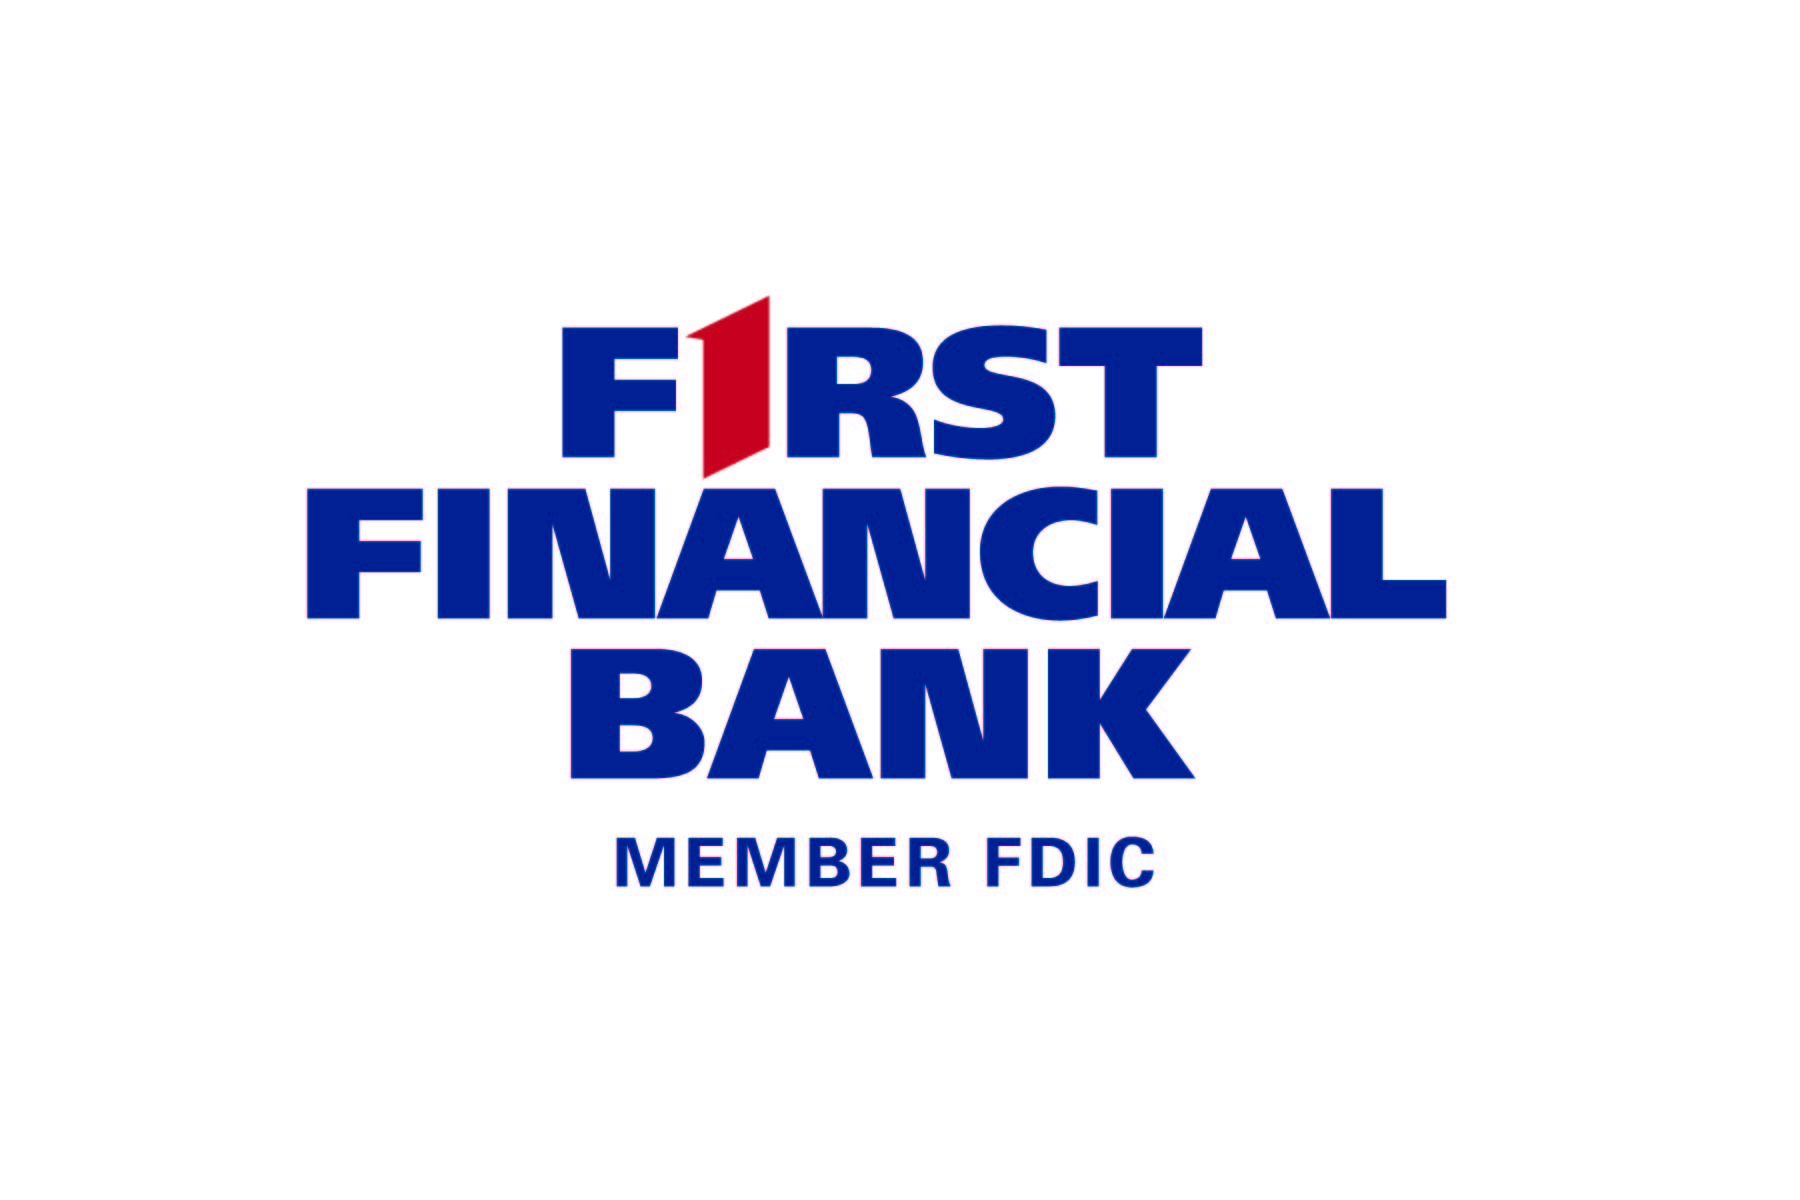 3. (Select) First Financial Bank